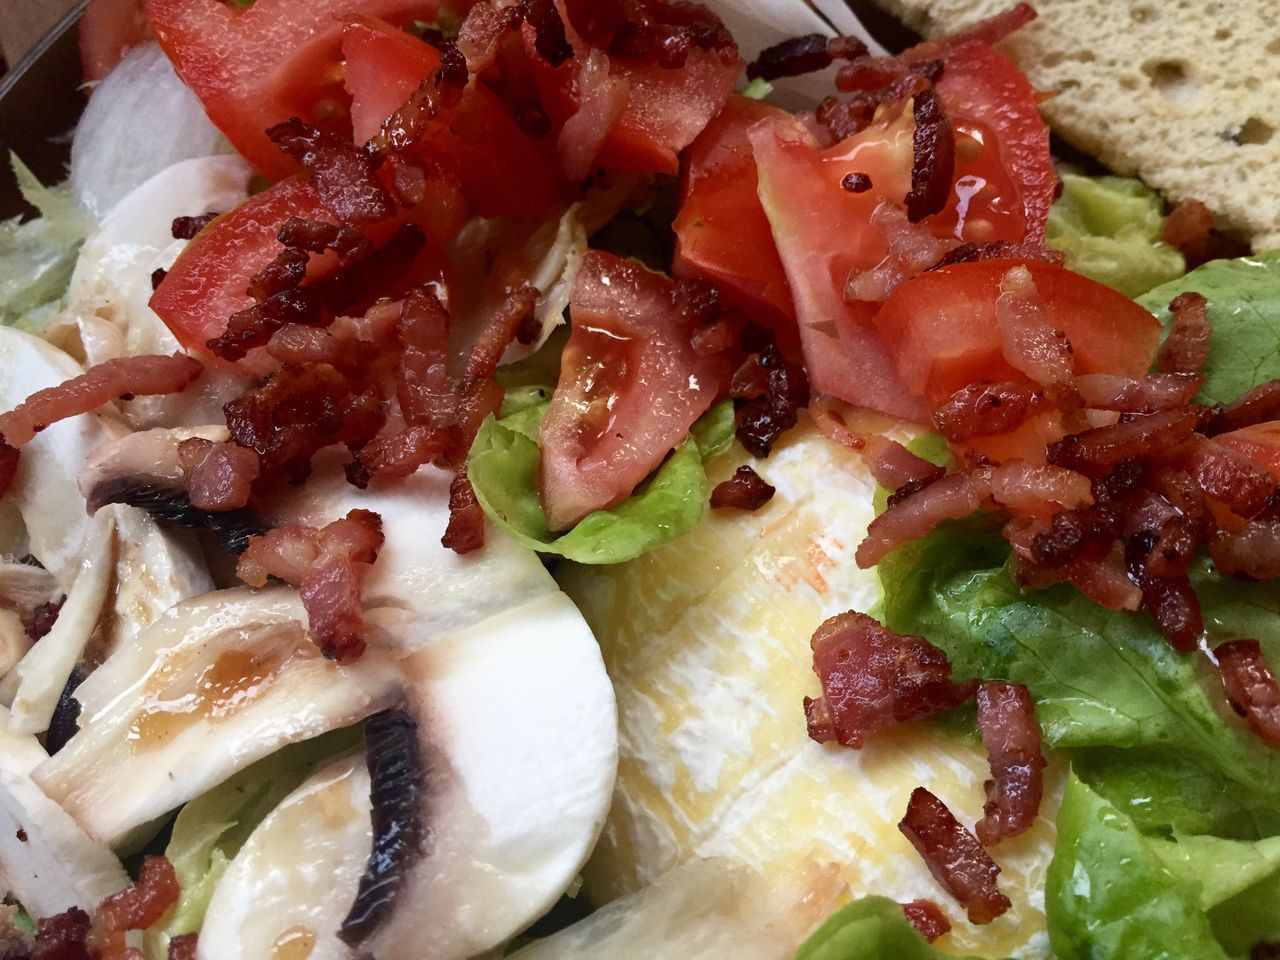 Salad Tomato Mushrooms Diced Bacon Goatcheese